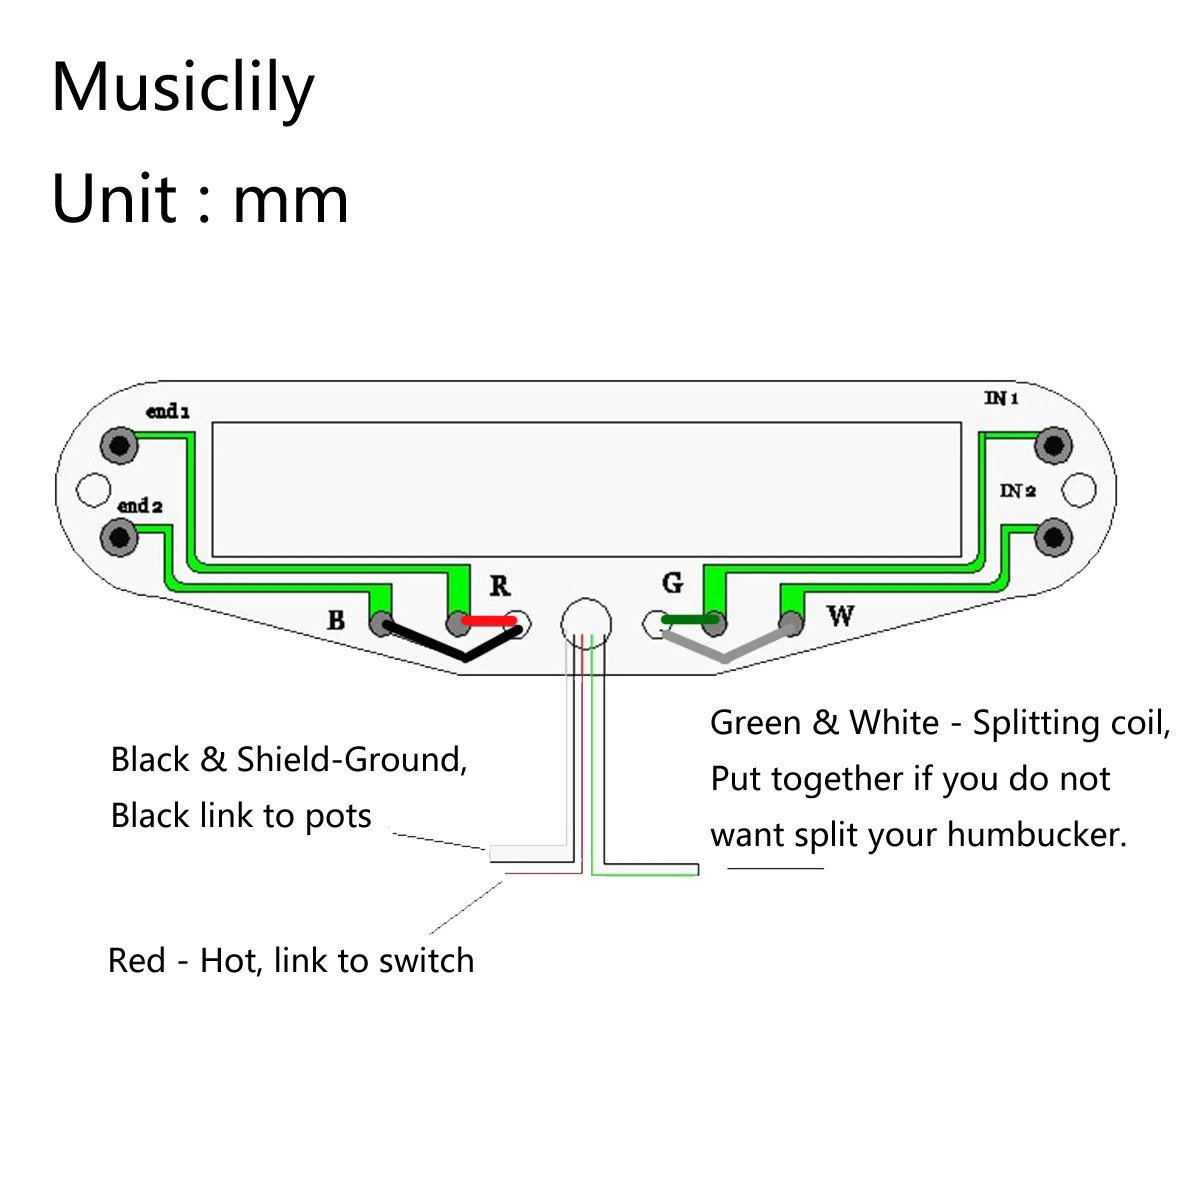 61ERnkCDMWL._SL1200_ amazon com musiclily dual hot rail blaster humbucker guitar  at crackthecode.co